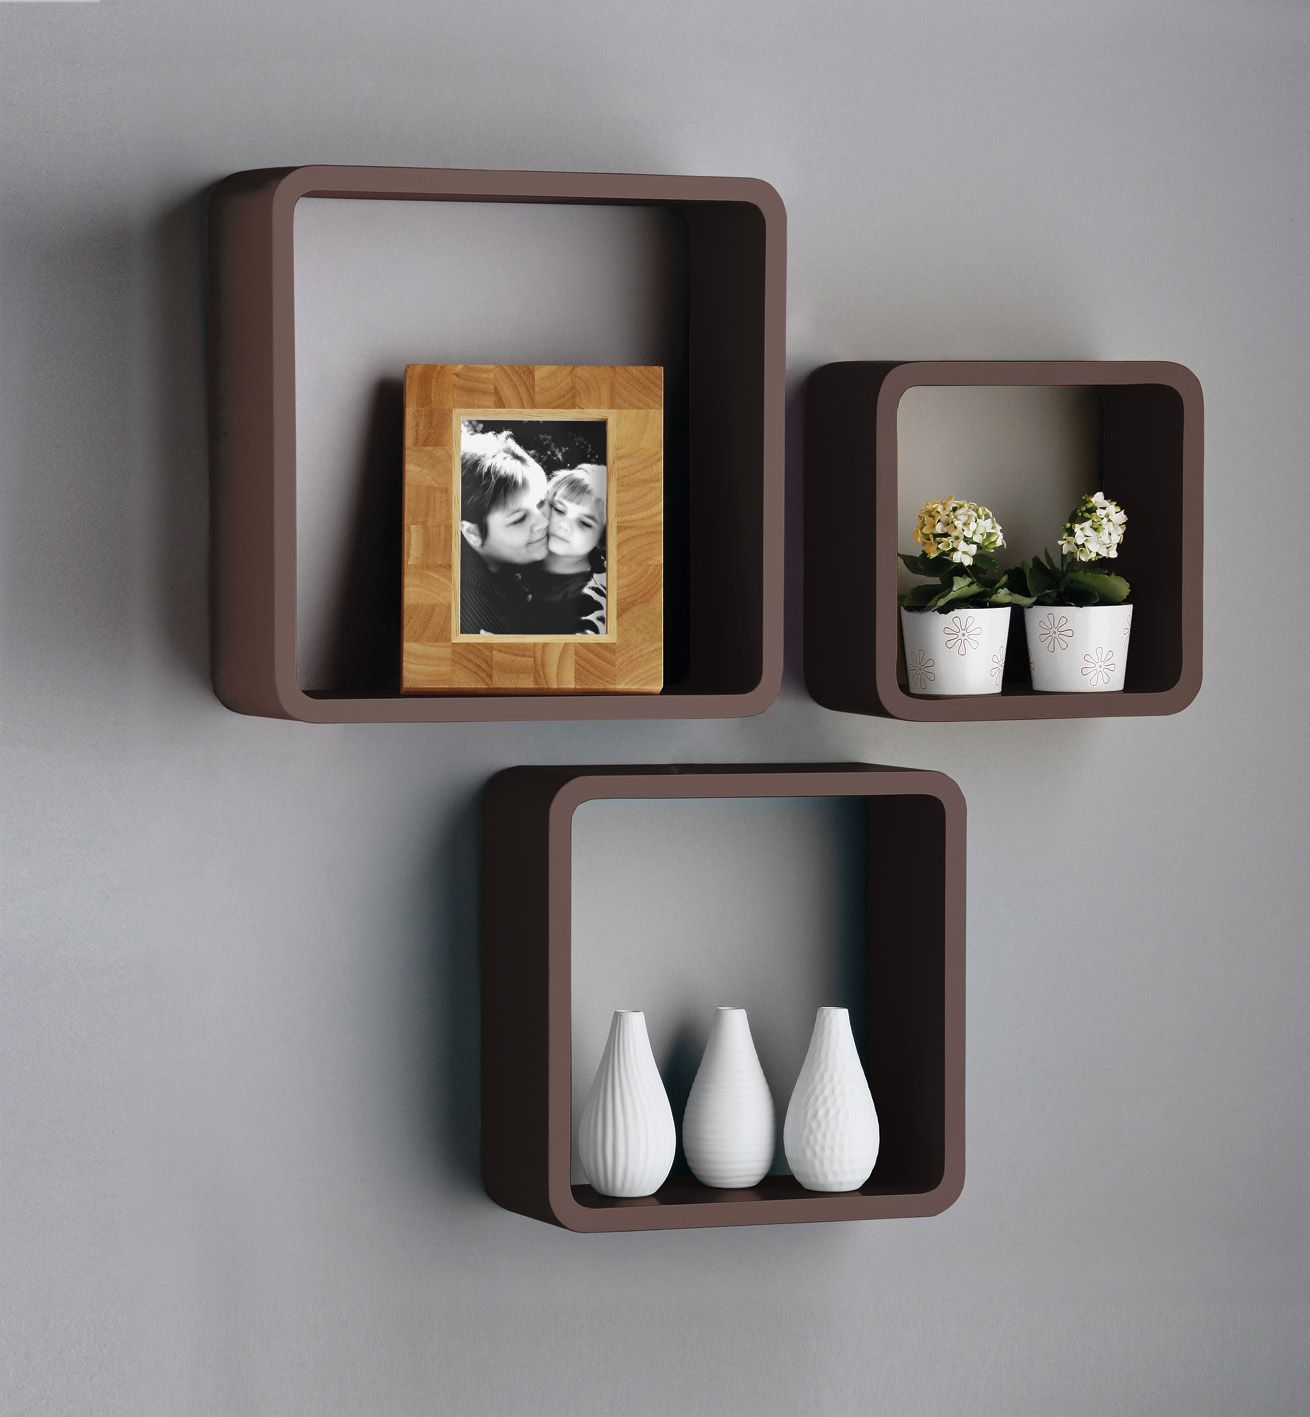 Melannco Floating Shelves Fascinating Square Box Floating Shelf  Home Decor  Pinterest  Shelves Review